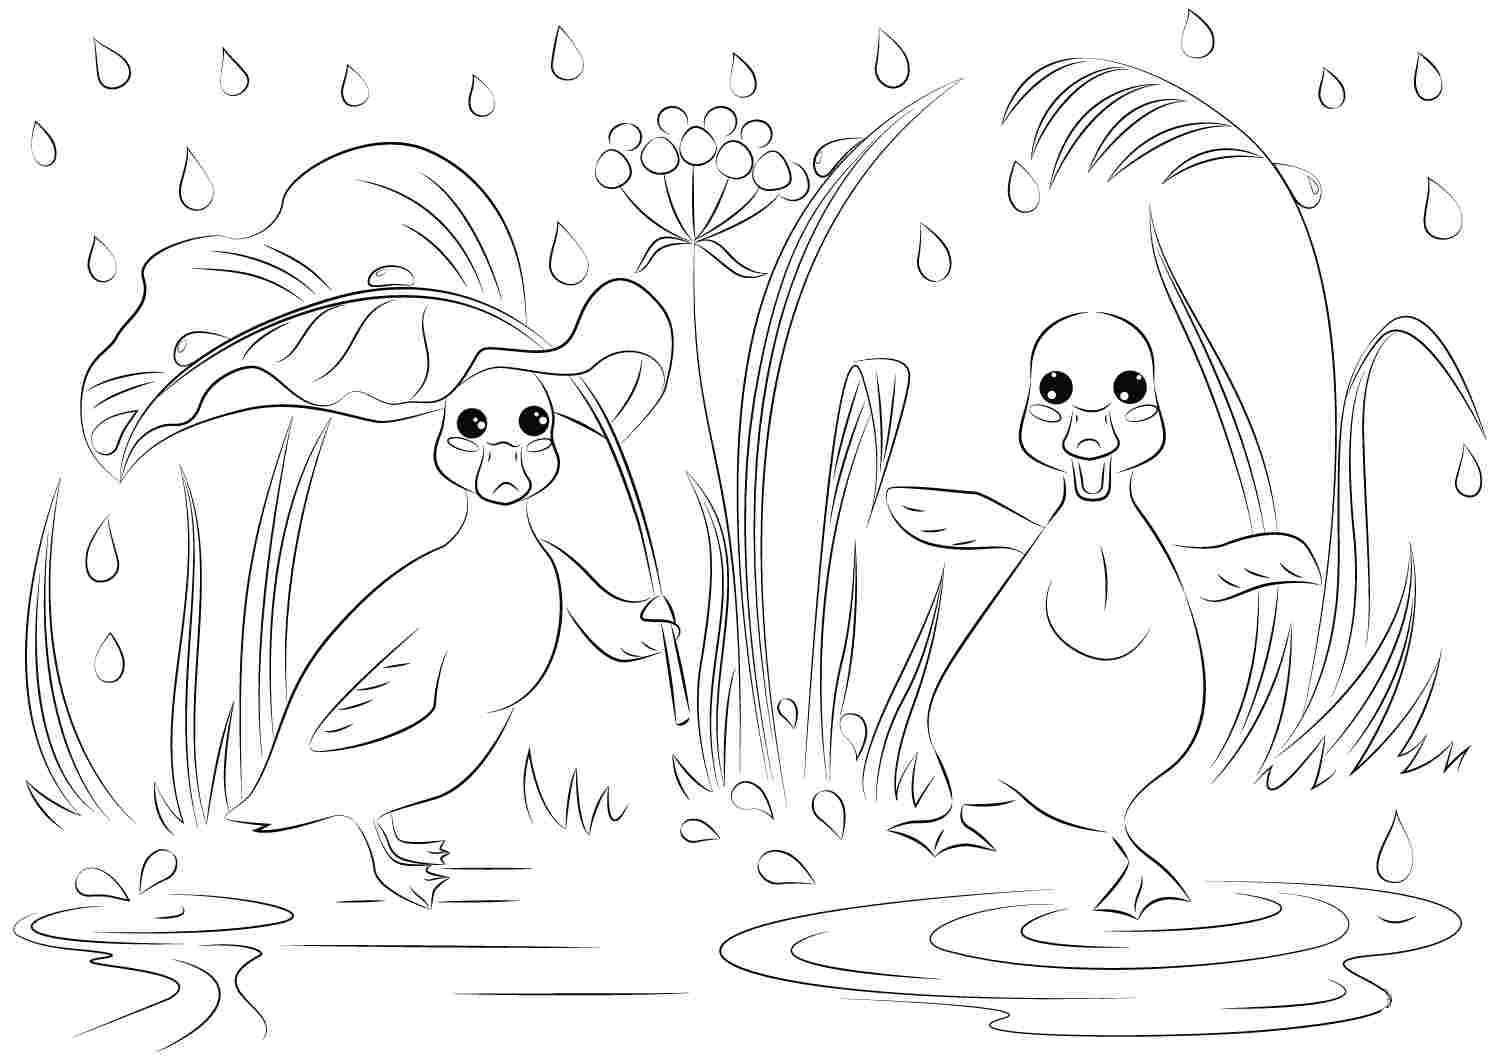 Funny cartoon ducks dancing under the rain Coloring Pages